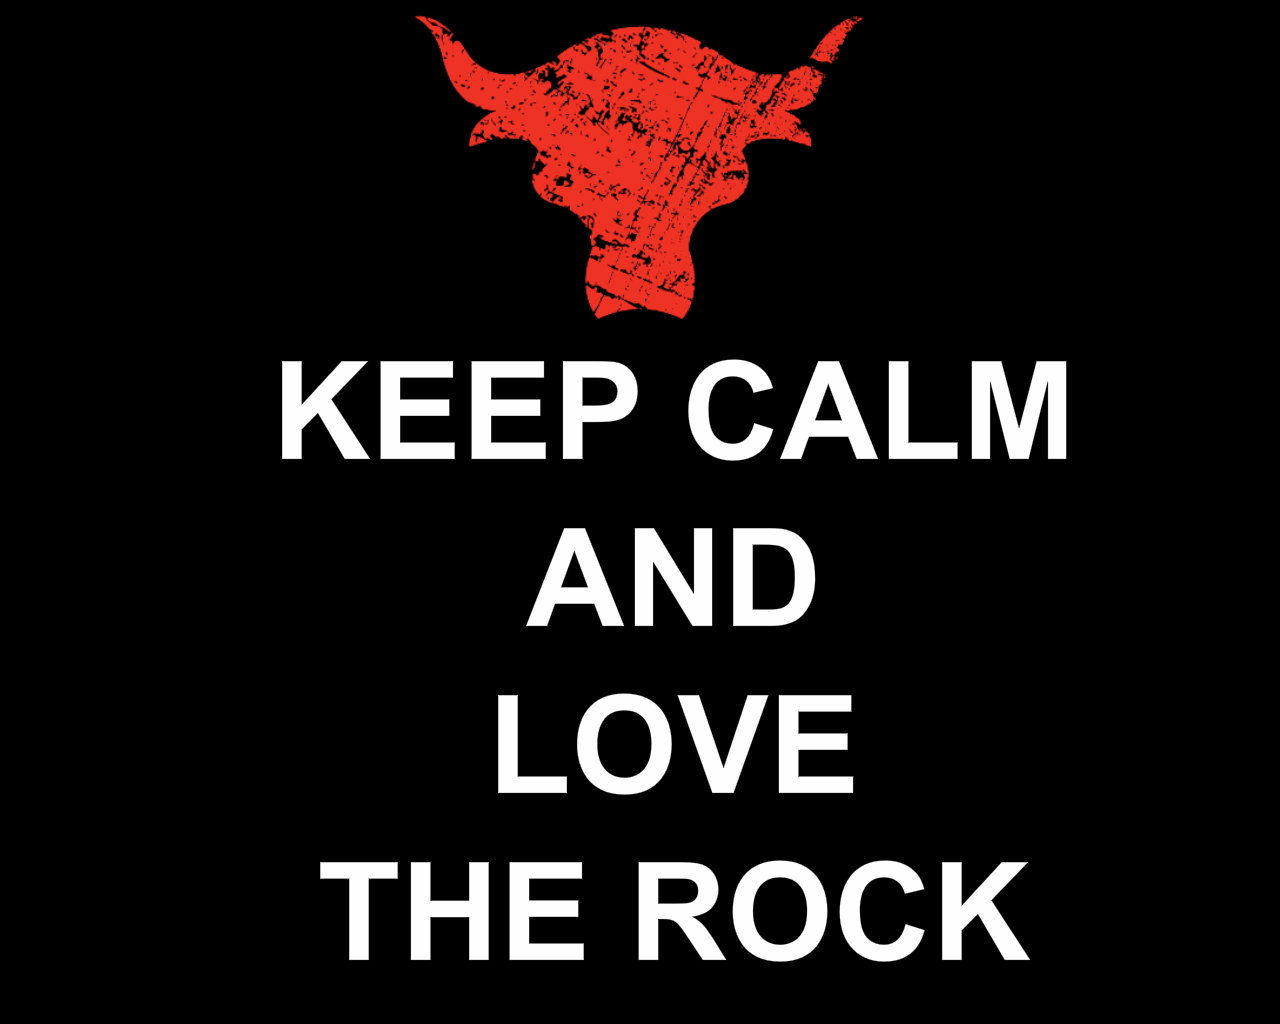 WWE Images KEEP CALM AND LOVE THE ROCK HD Wallpaper And Background Photos